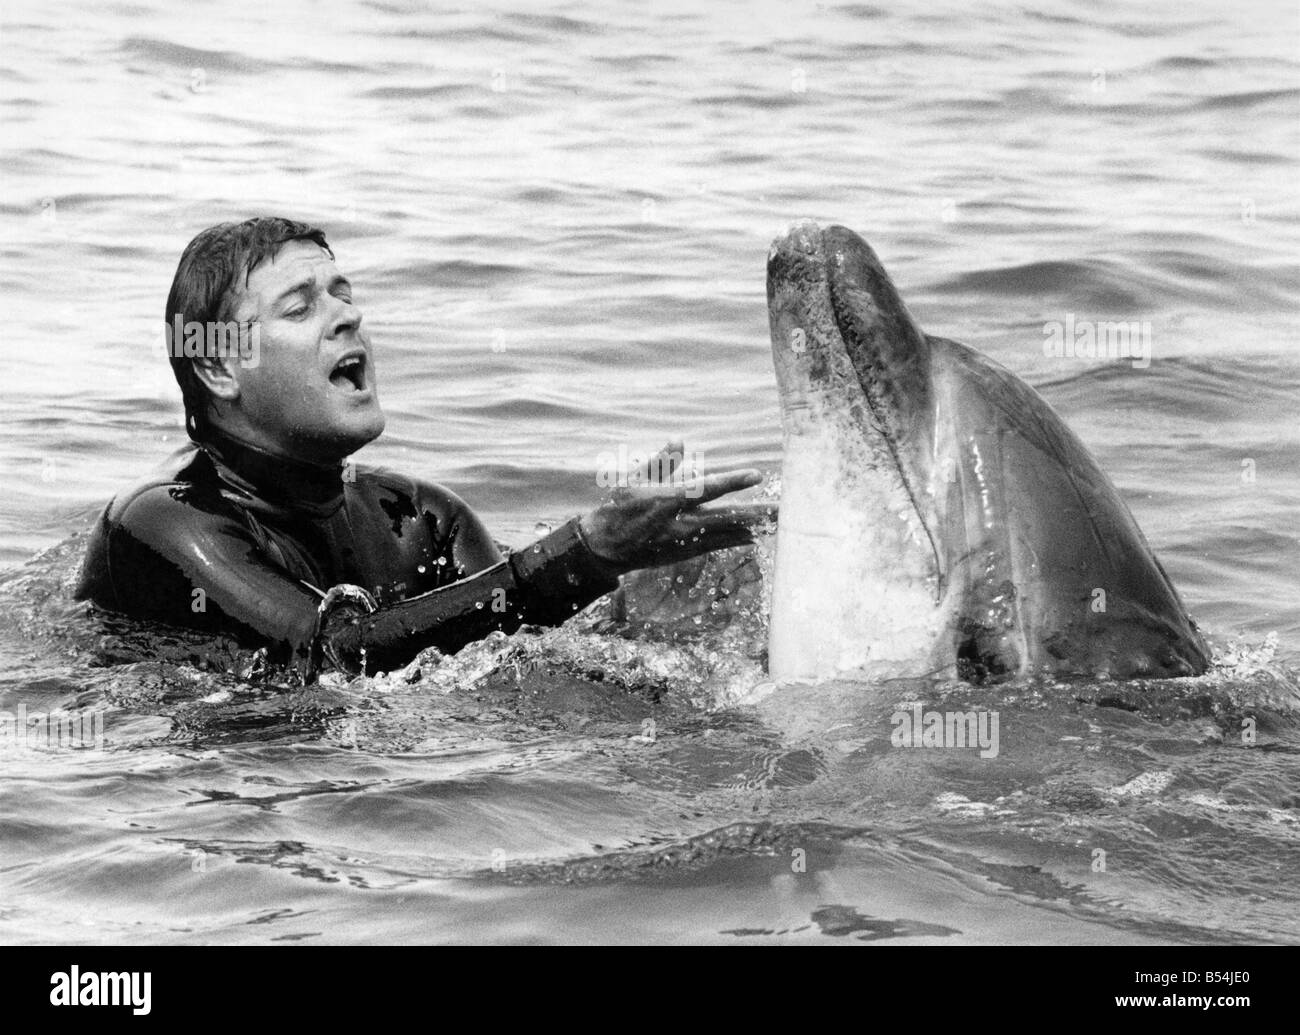 Lakeman and Percy the dolphin frolic together. July 1984 P011844 - Stock Image